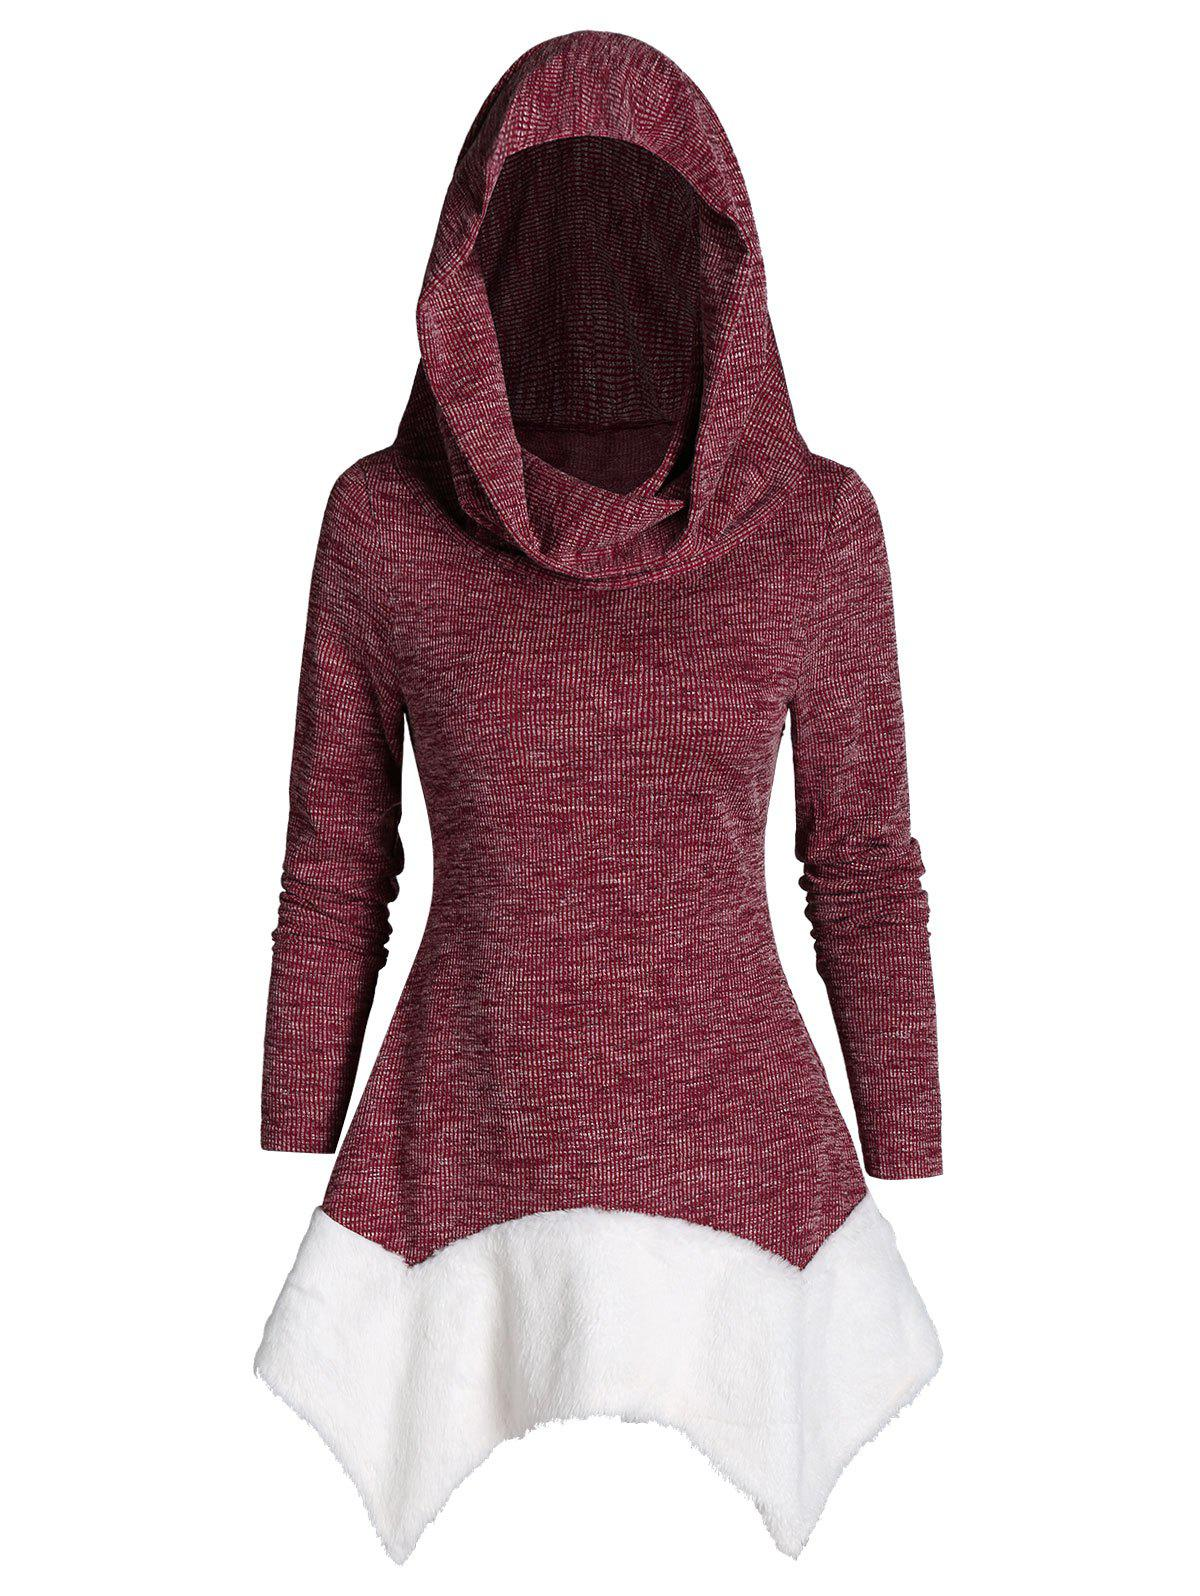 Hooded Faux Fur Hanky Hem Heathered Ribbed Sweater - RED WINE 3XL